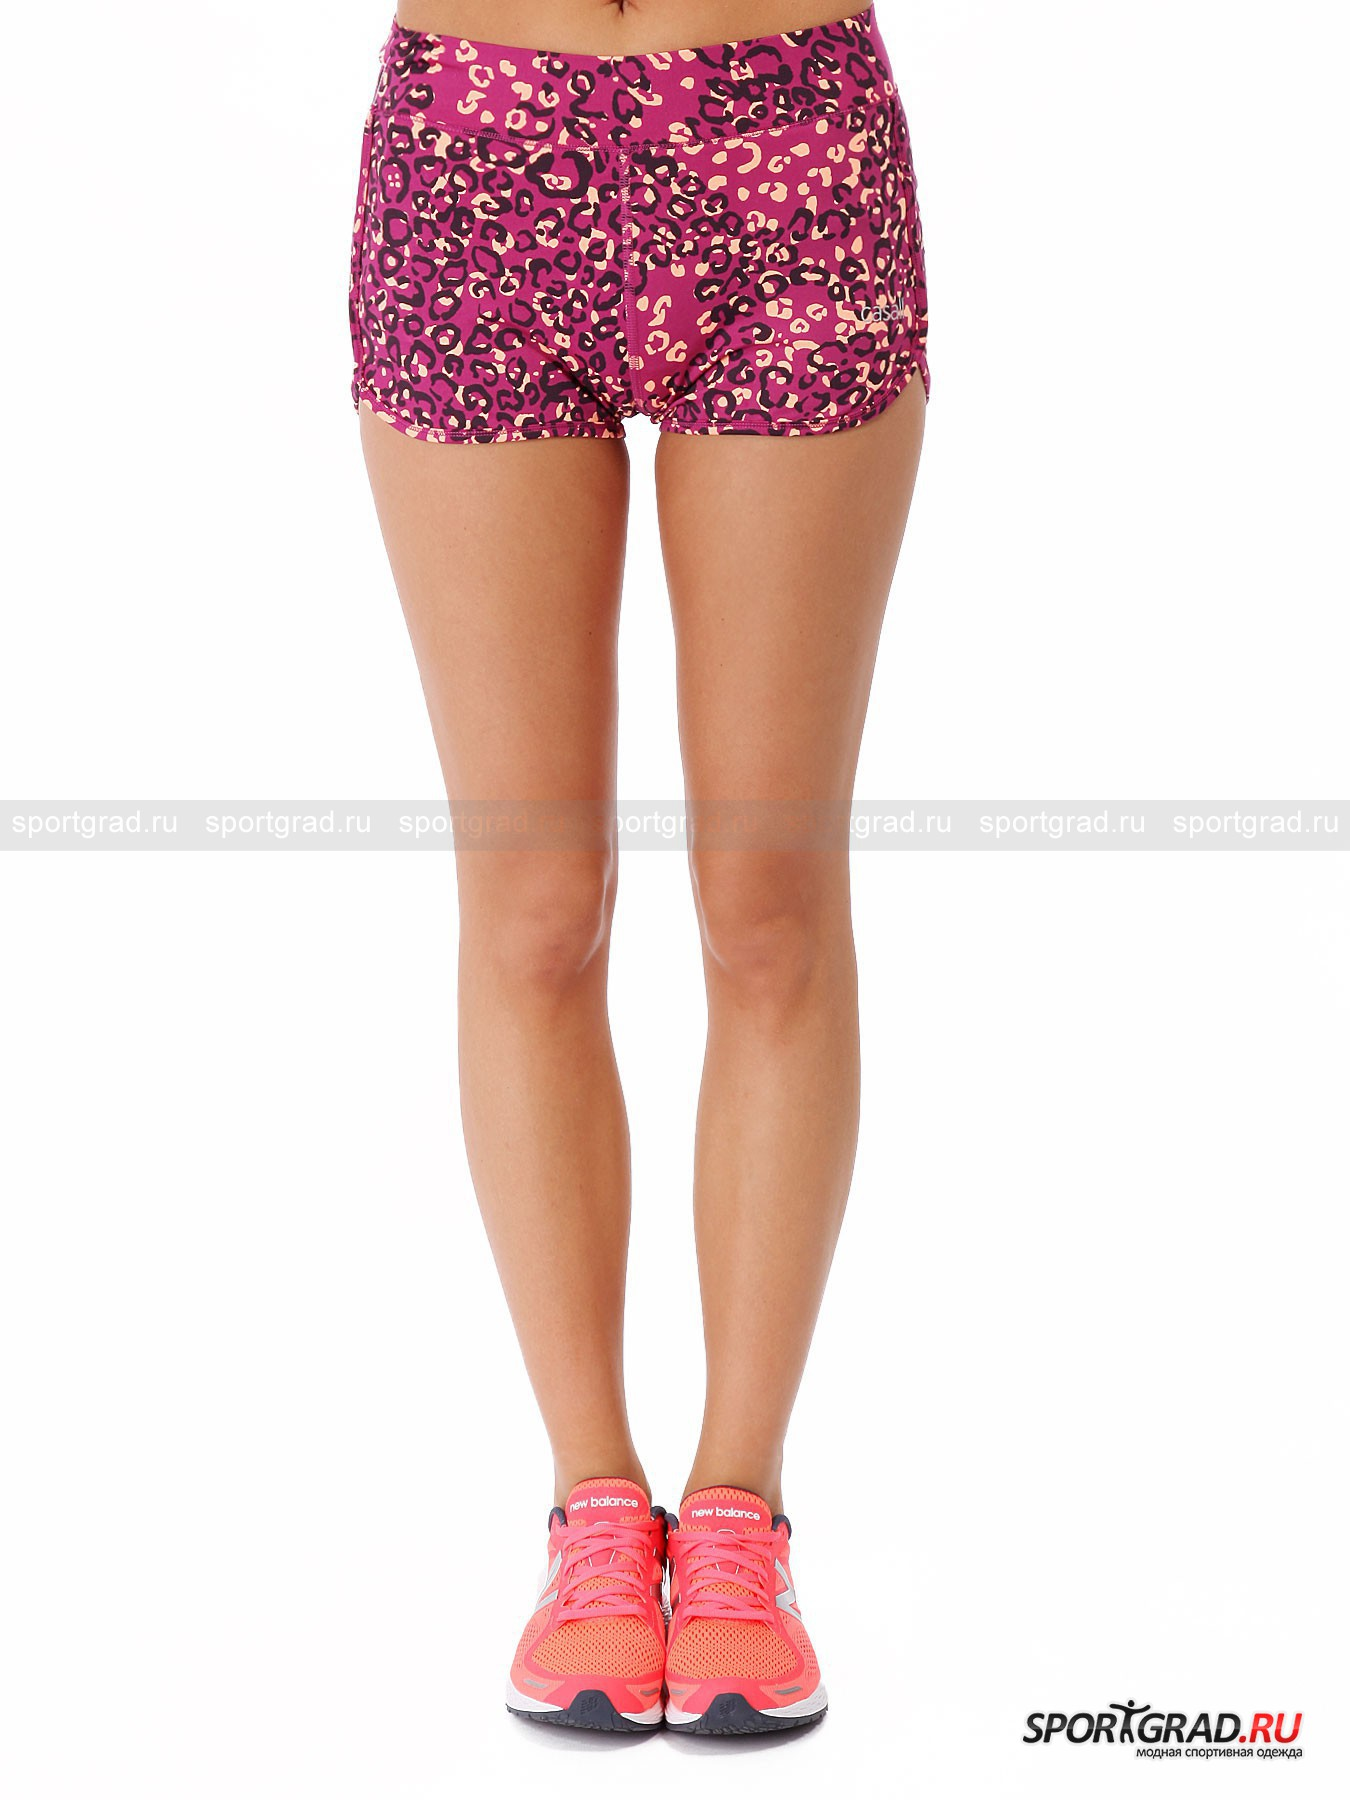 ����� ������� Big Cat Shorts CASALL